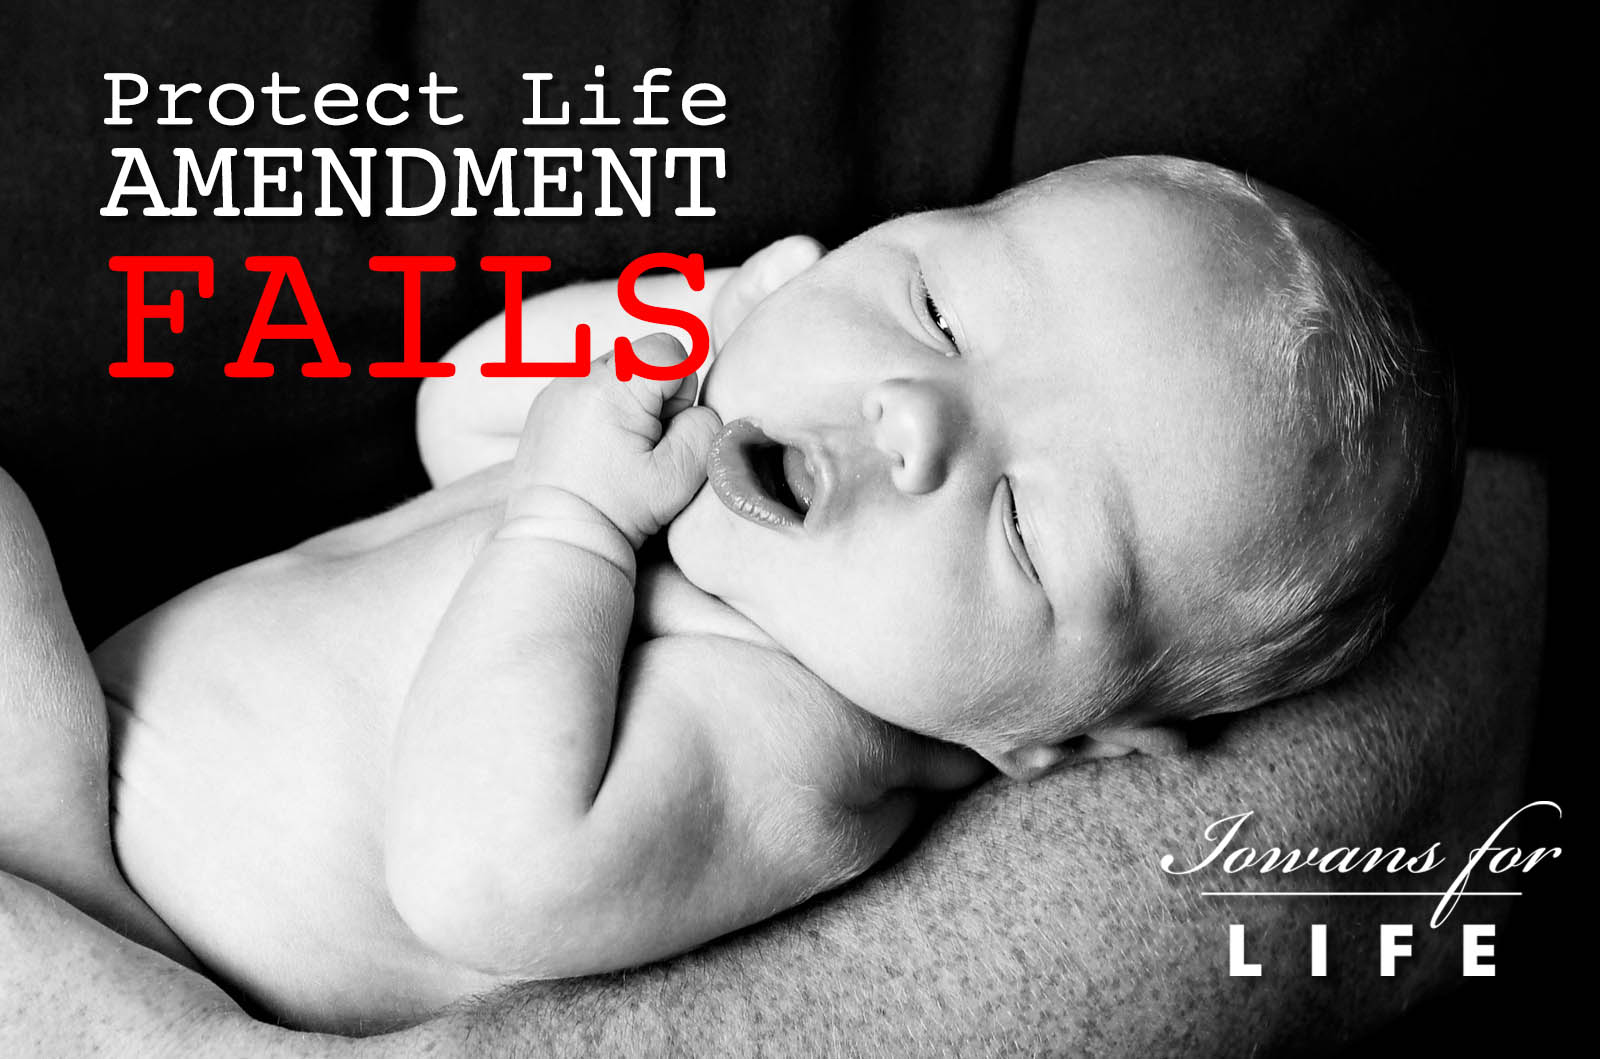 Protect Life Amendment failed